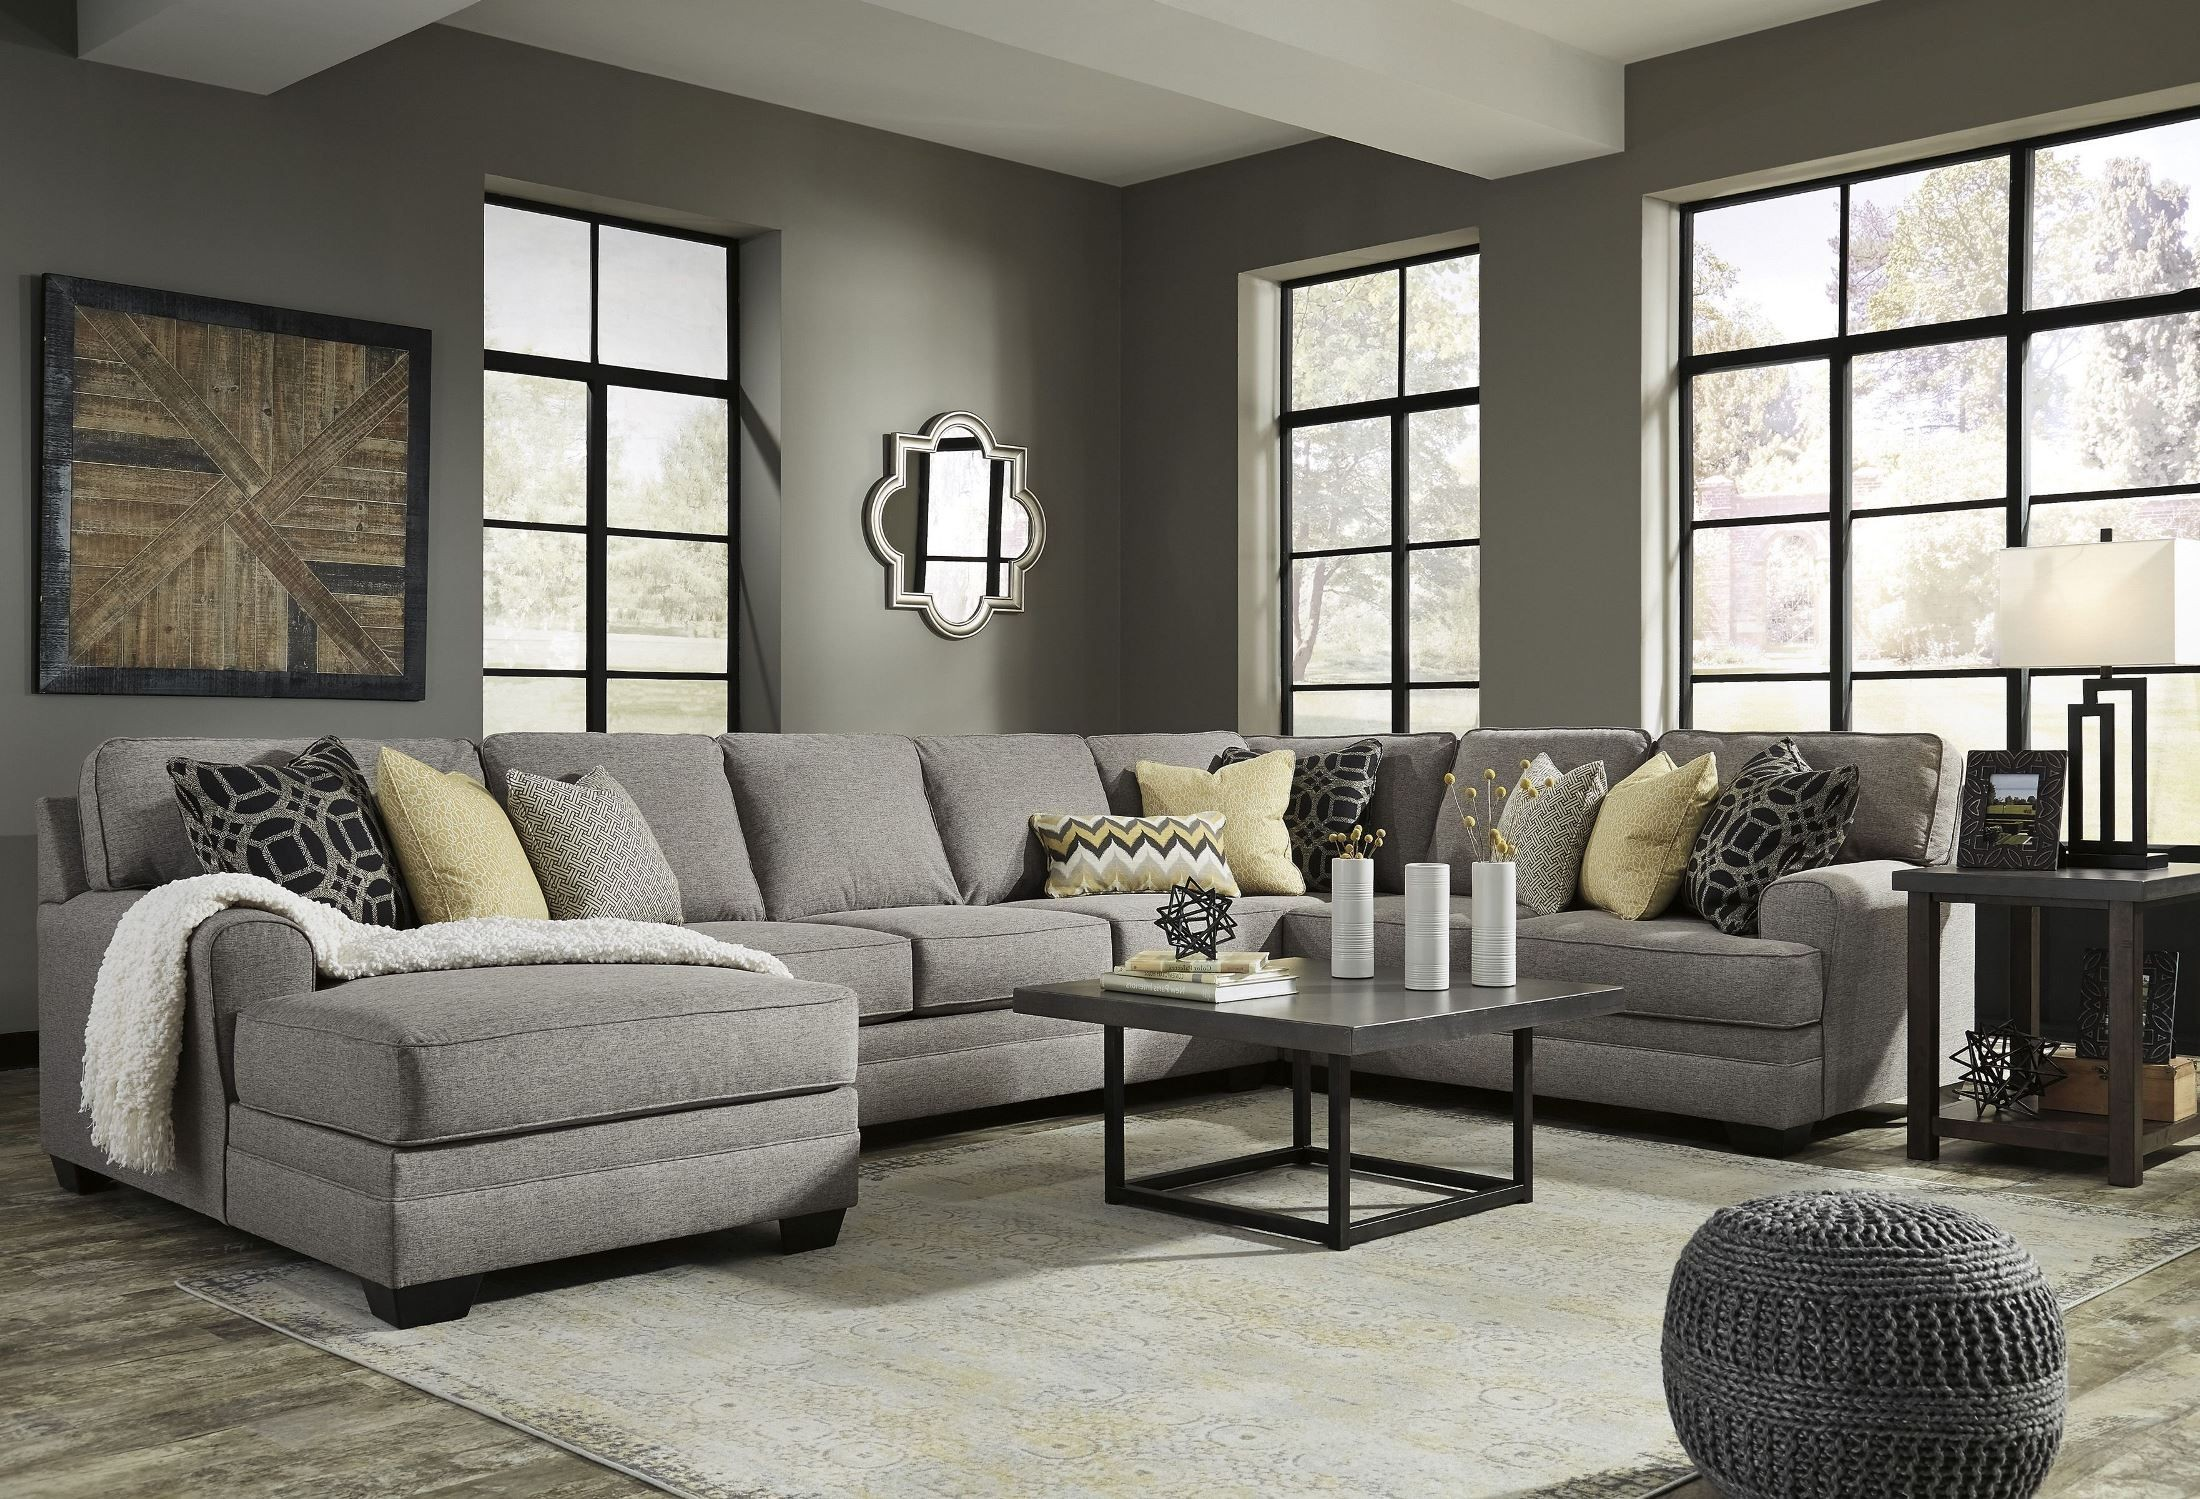 Cresson Pewter LAF Large Chaise Sectional, 54907-SEC4, Ashley